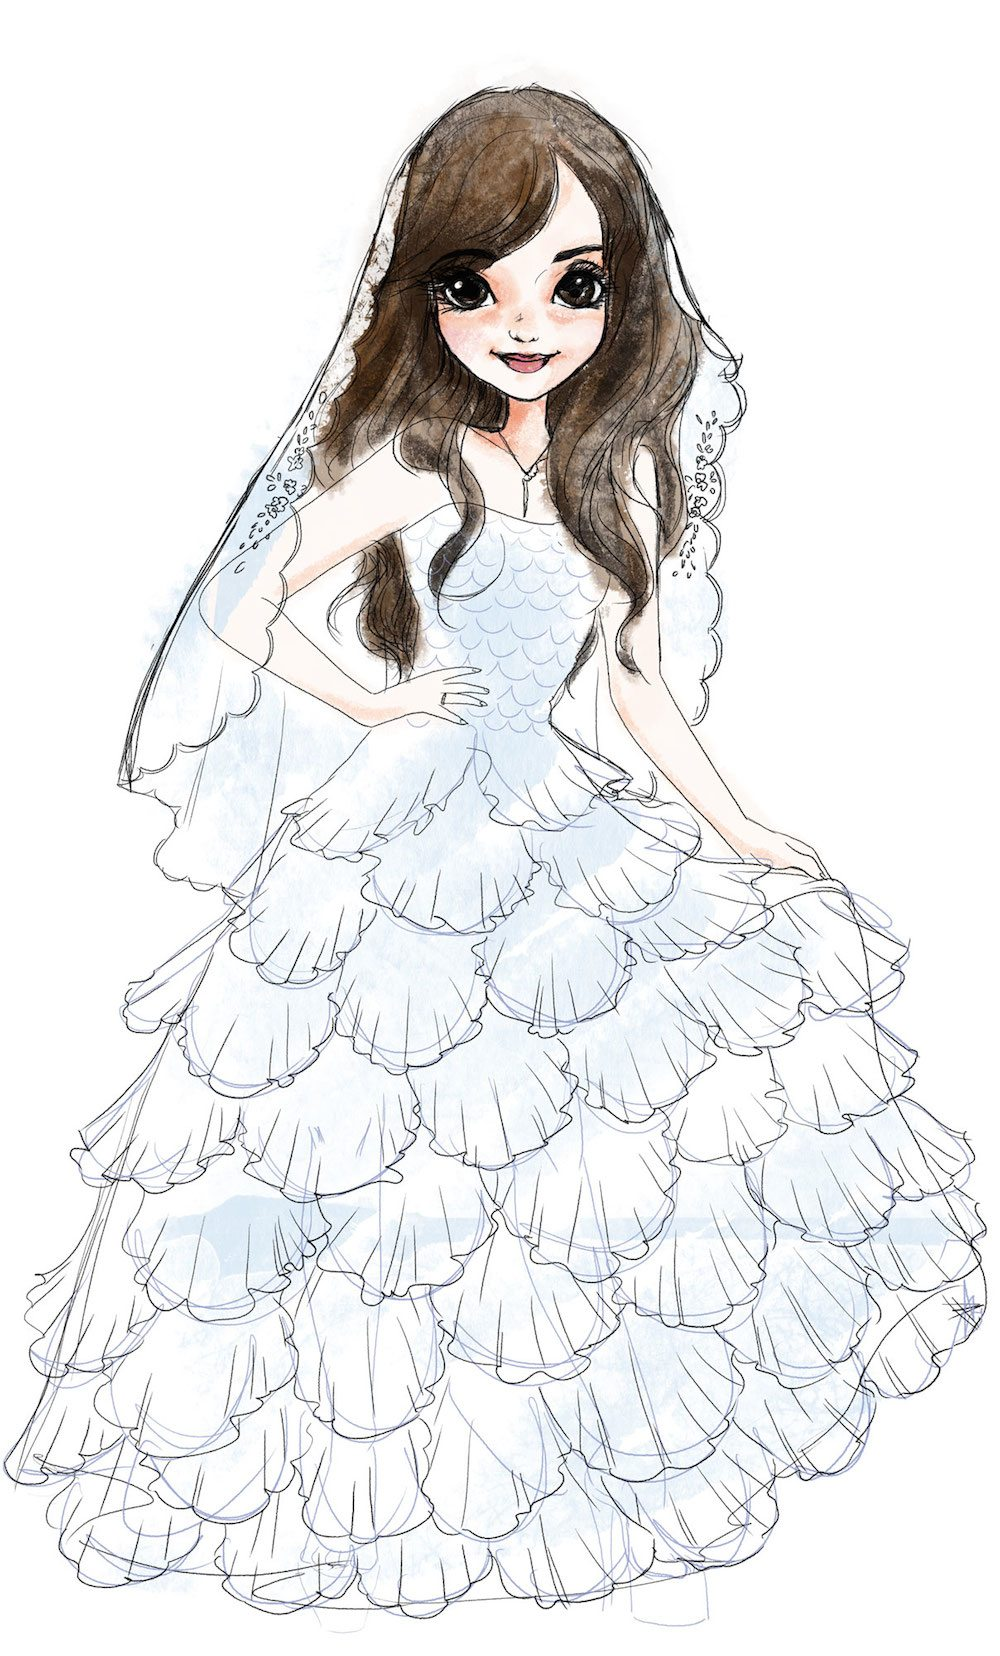 Draft Fashion Portrait of a Bride by Elisa Moriconi